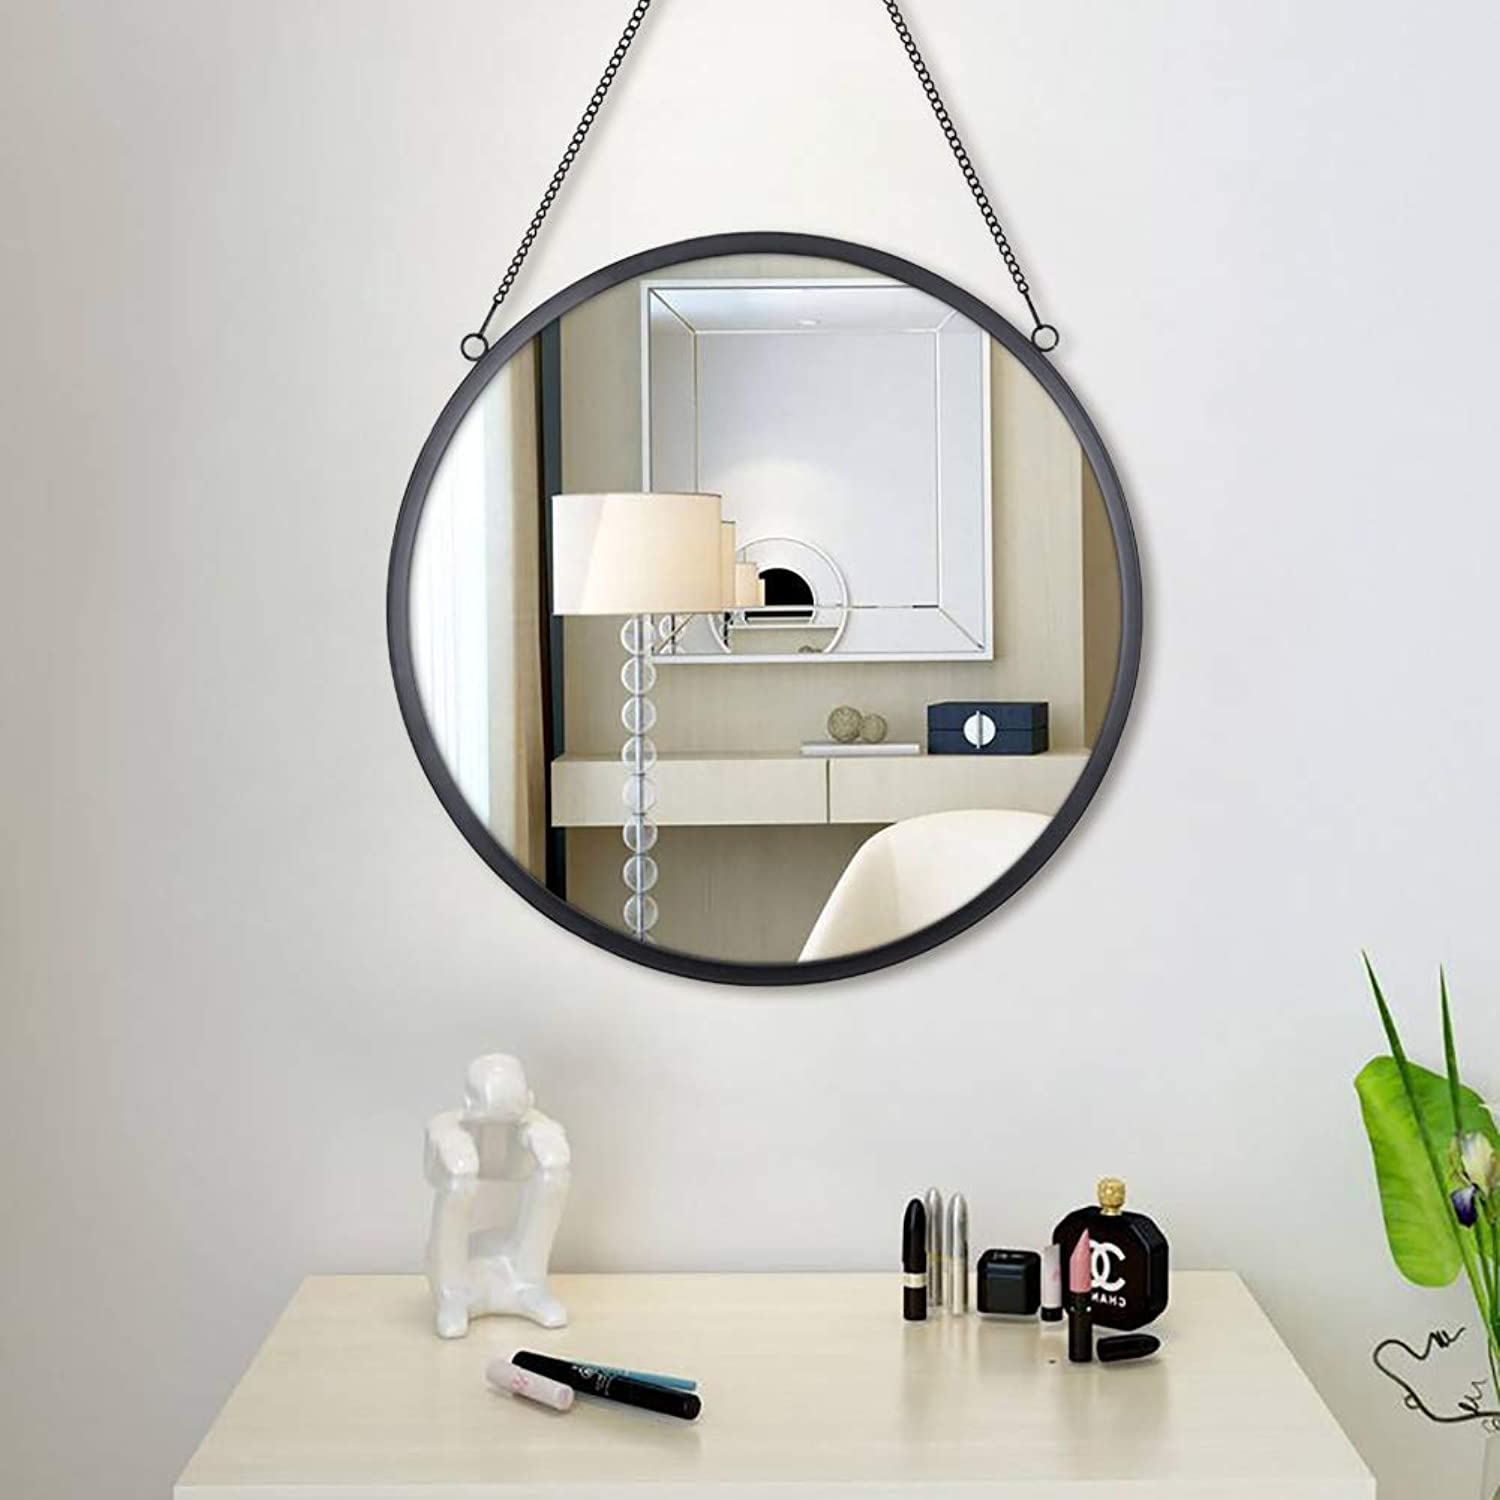 Simmer Stone 20'' Round Mirror Hanging Chain, Thin Metal Framed Decorative Wall Mirror, Wall Mount Hook Offered, Black